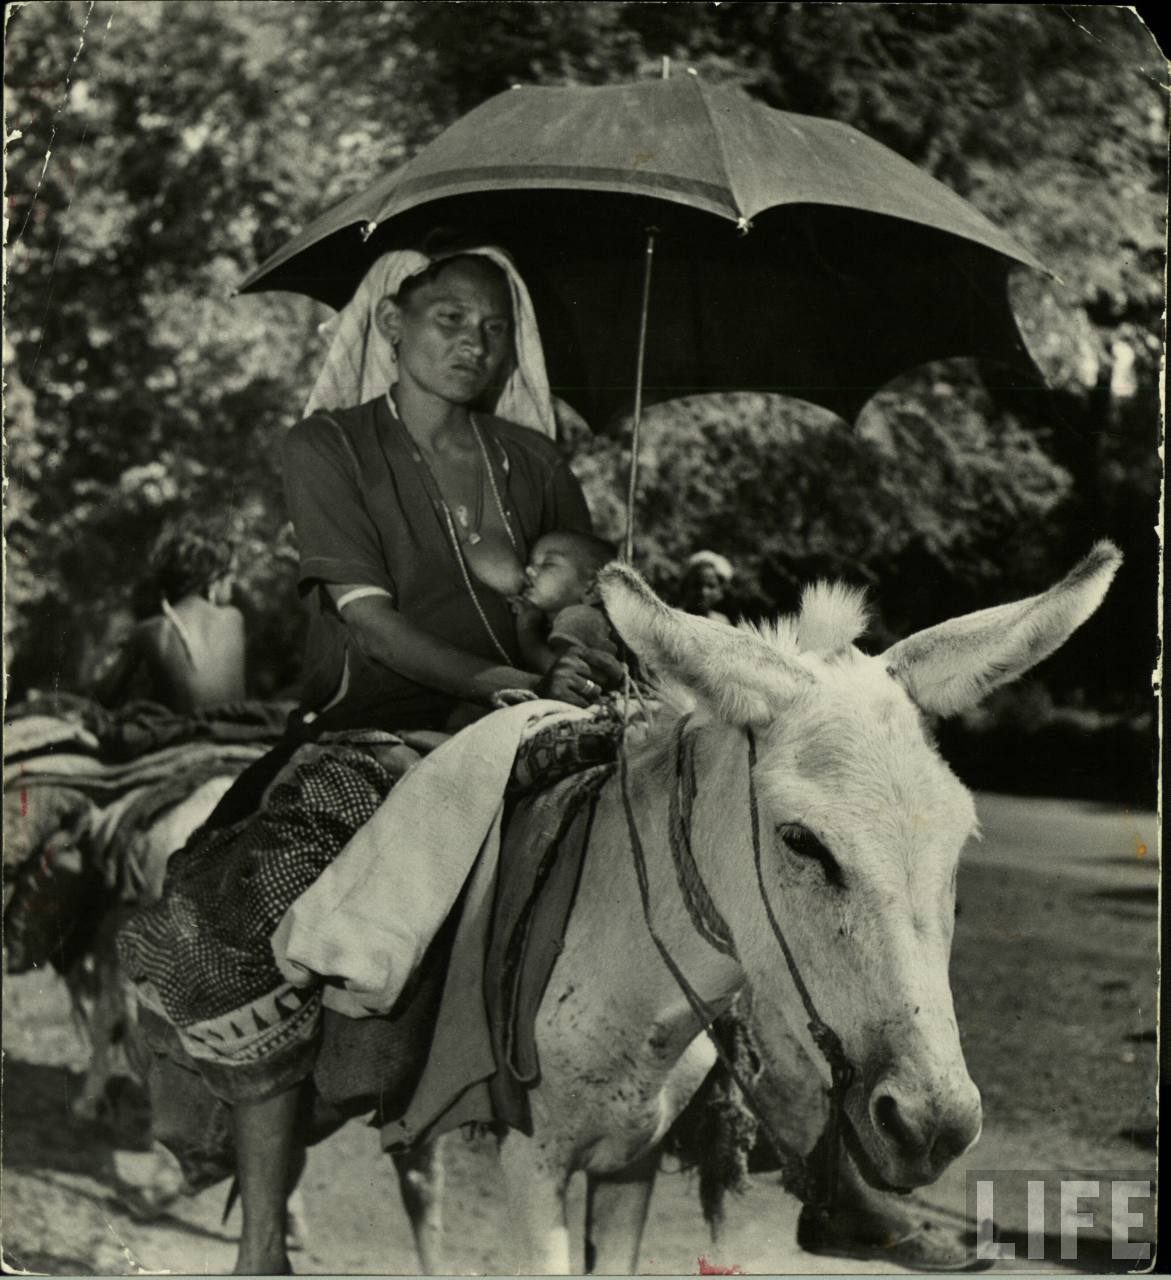 Mother and child are part of caravan 25 days on road. More fortunate than most, woman can ride and has an umbrella for shade as she feeds her baby